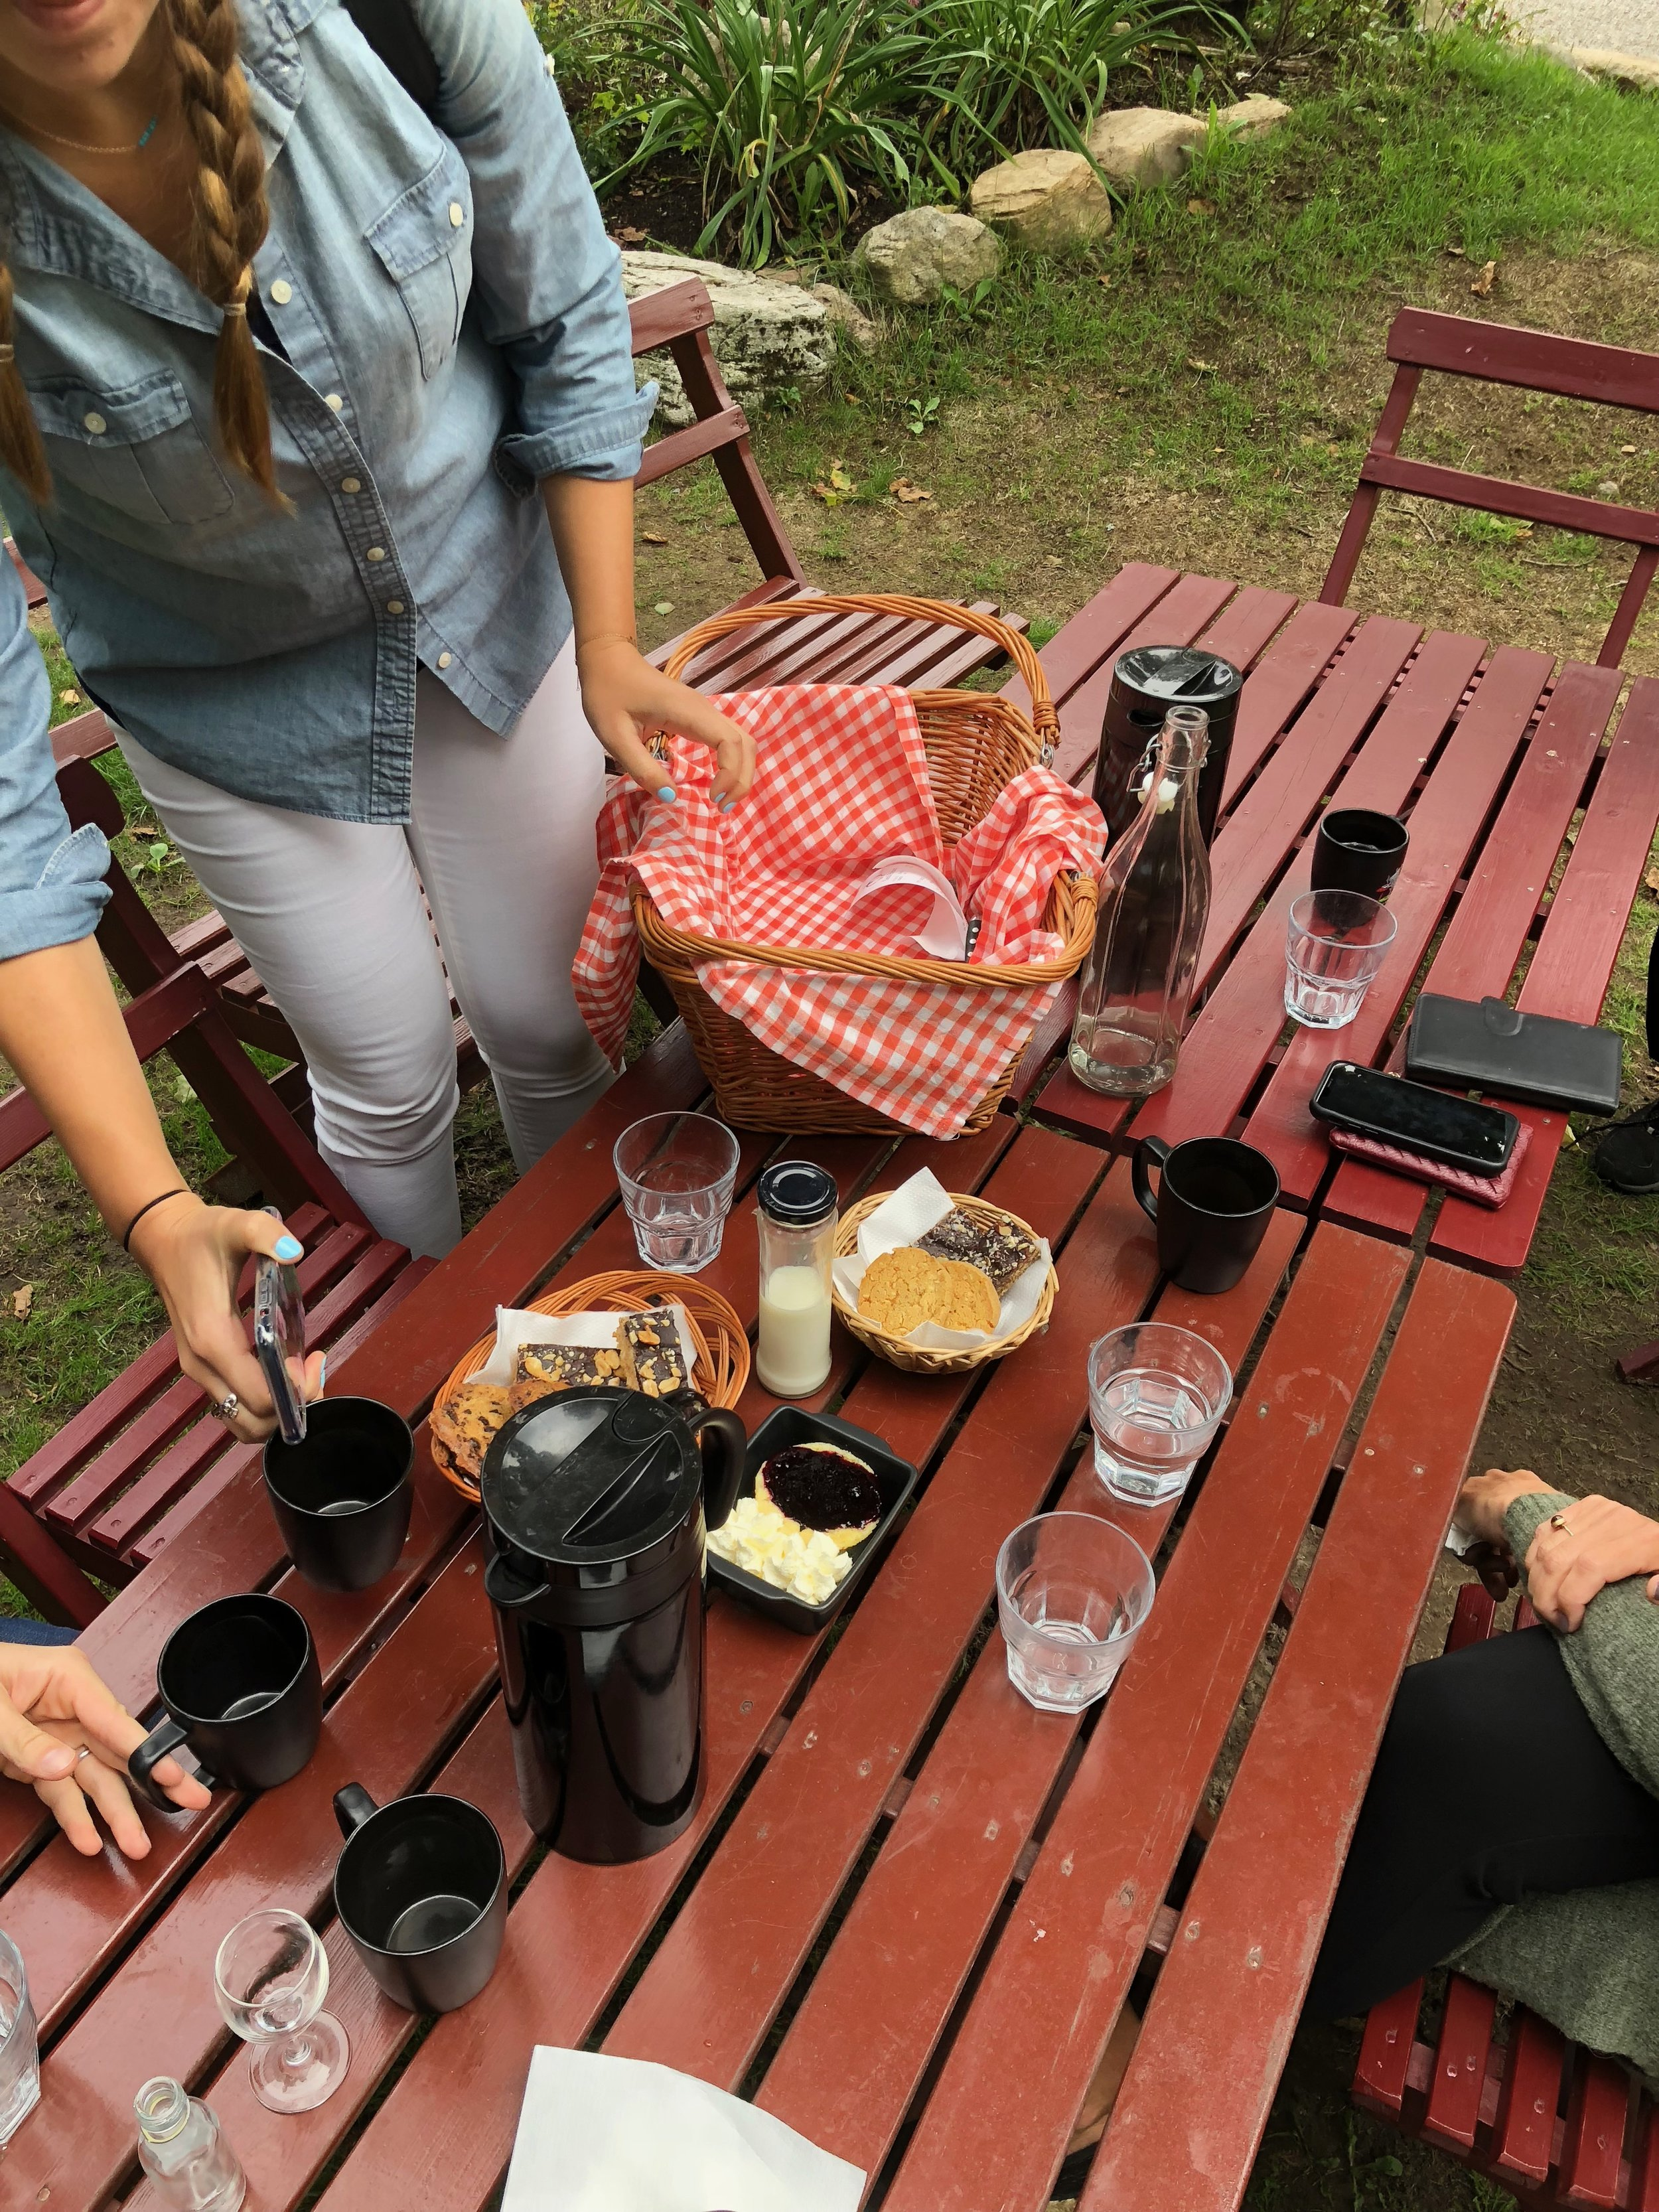 Time for fika, which arrives in a picnic basket!